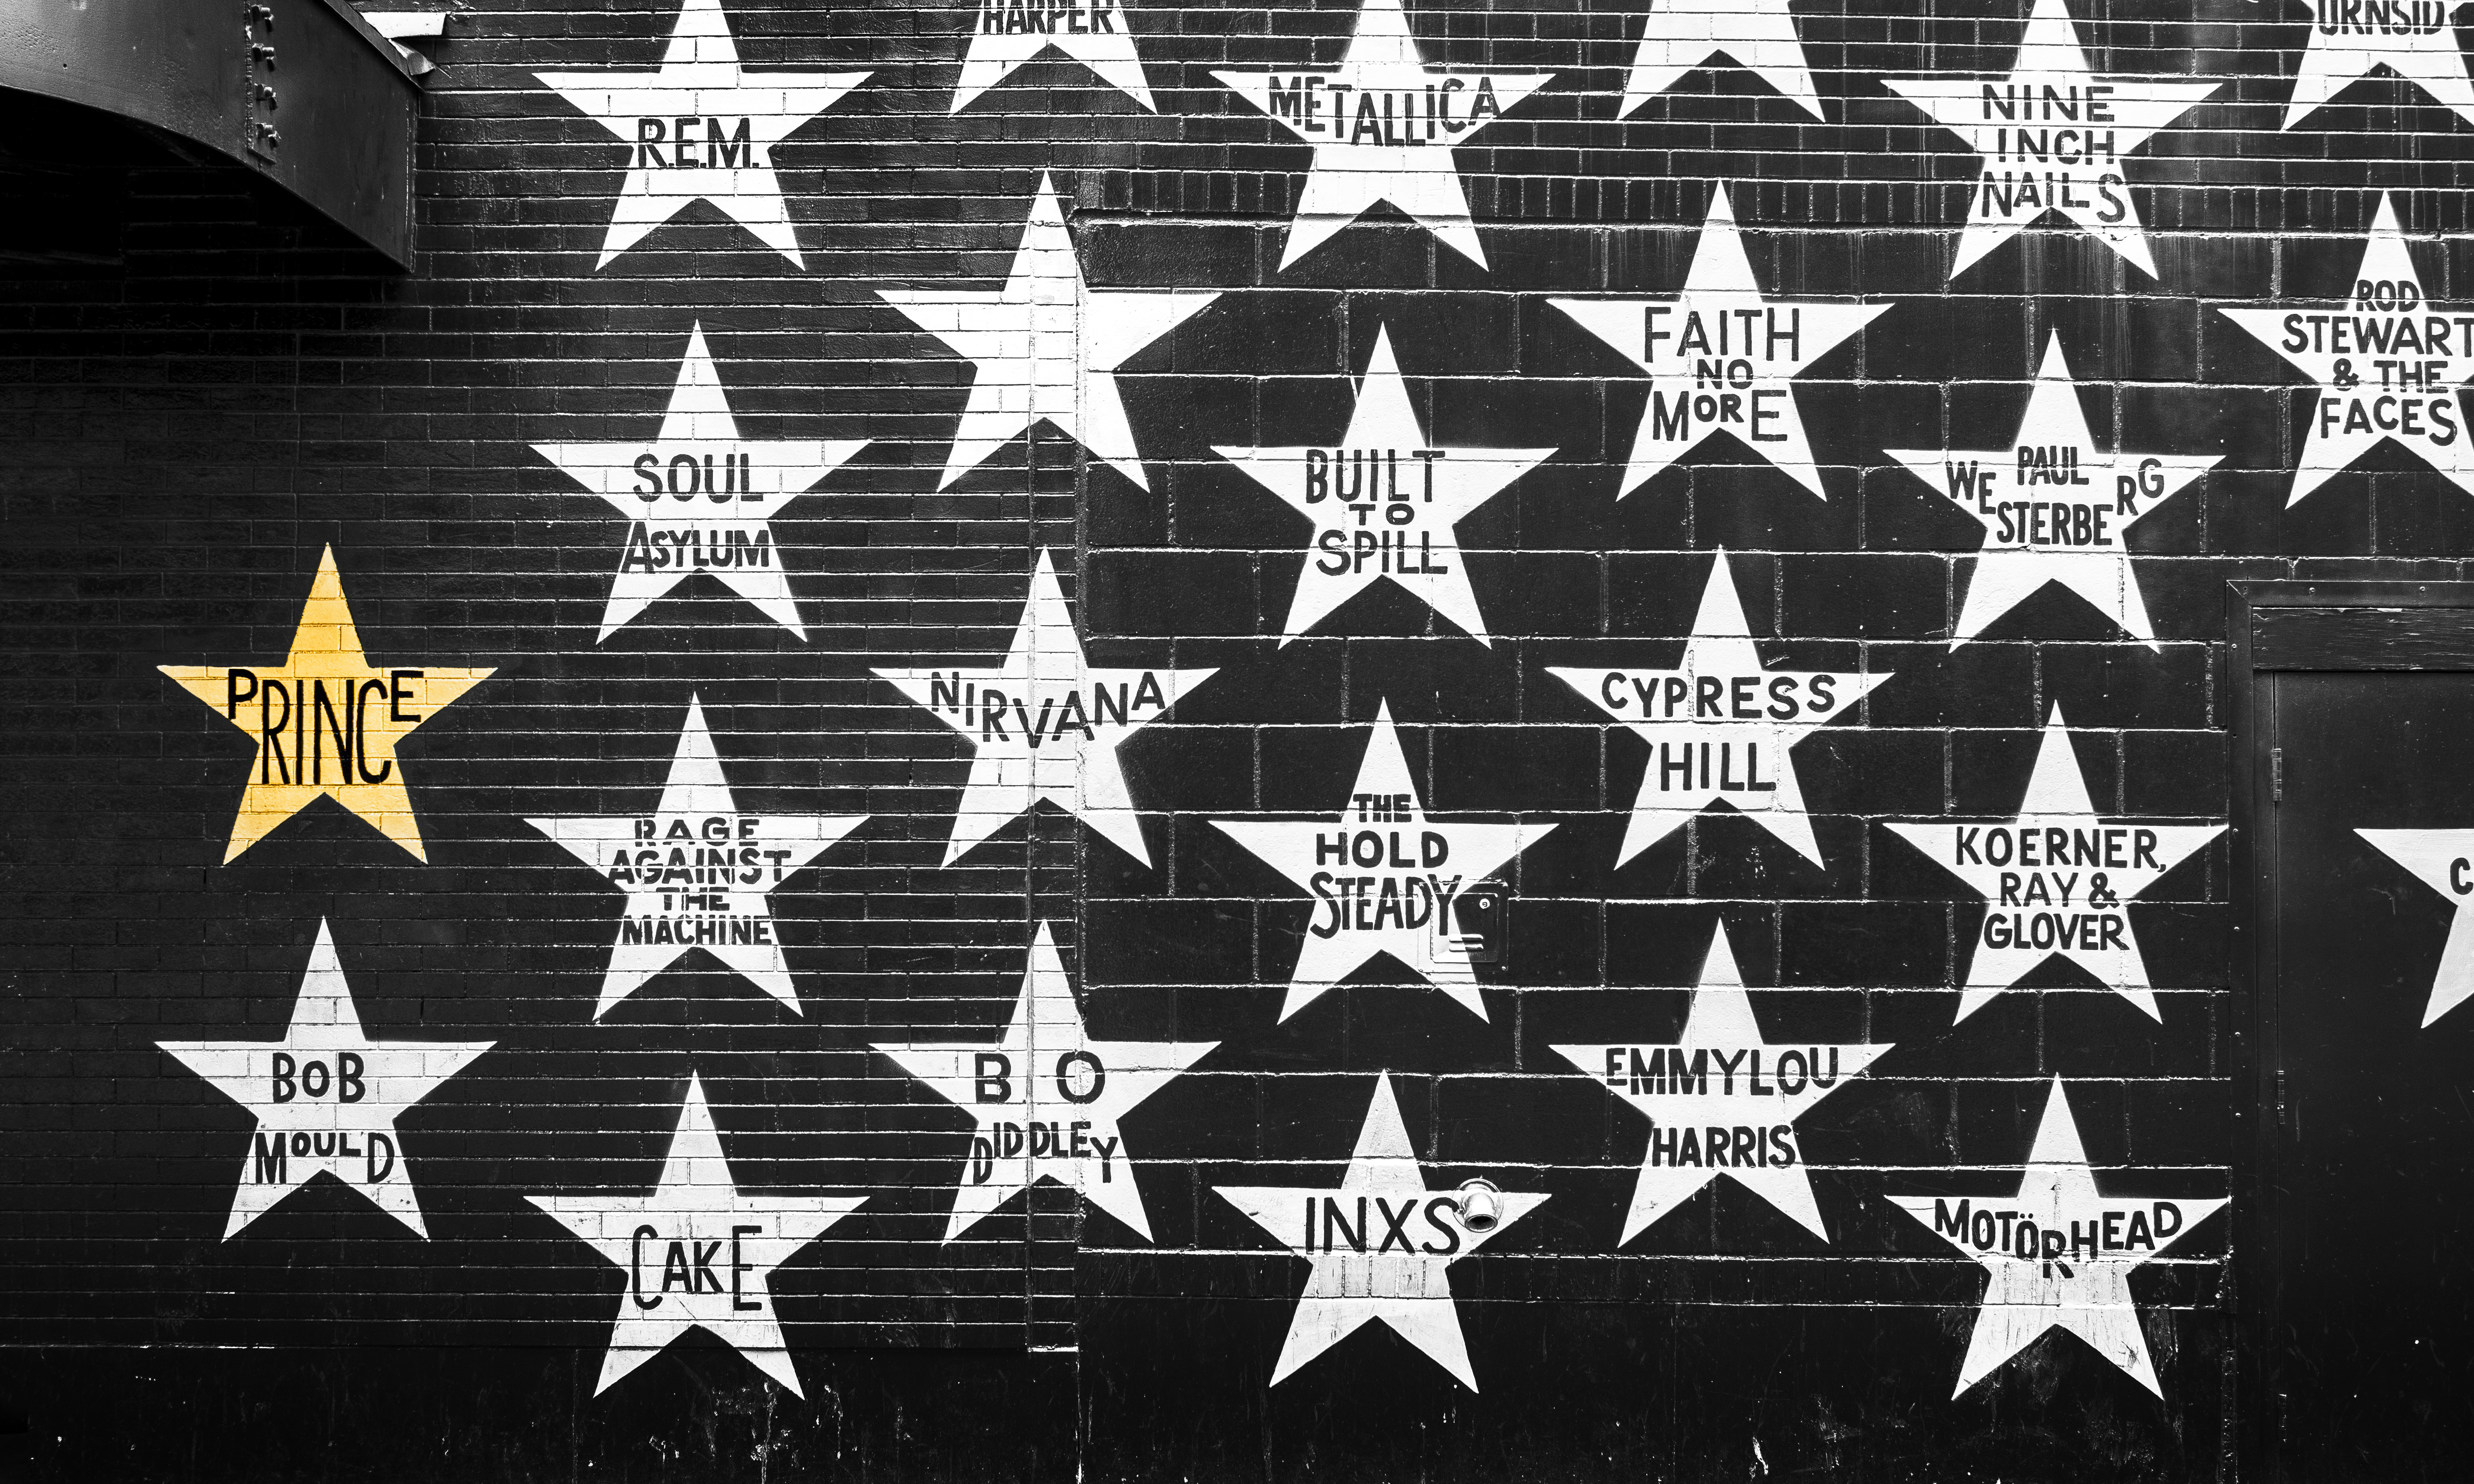 The Prince star at First Avenue in Downtown Minneapolis is just one more thing to do and see.